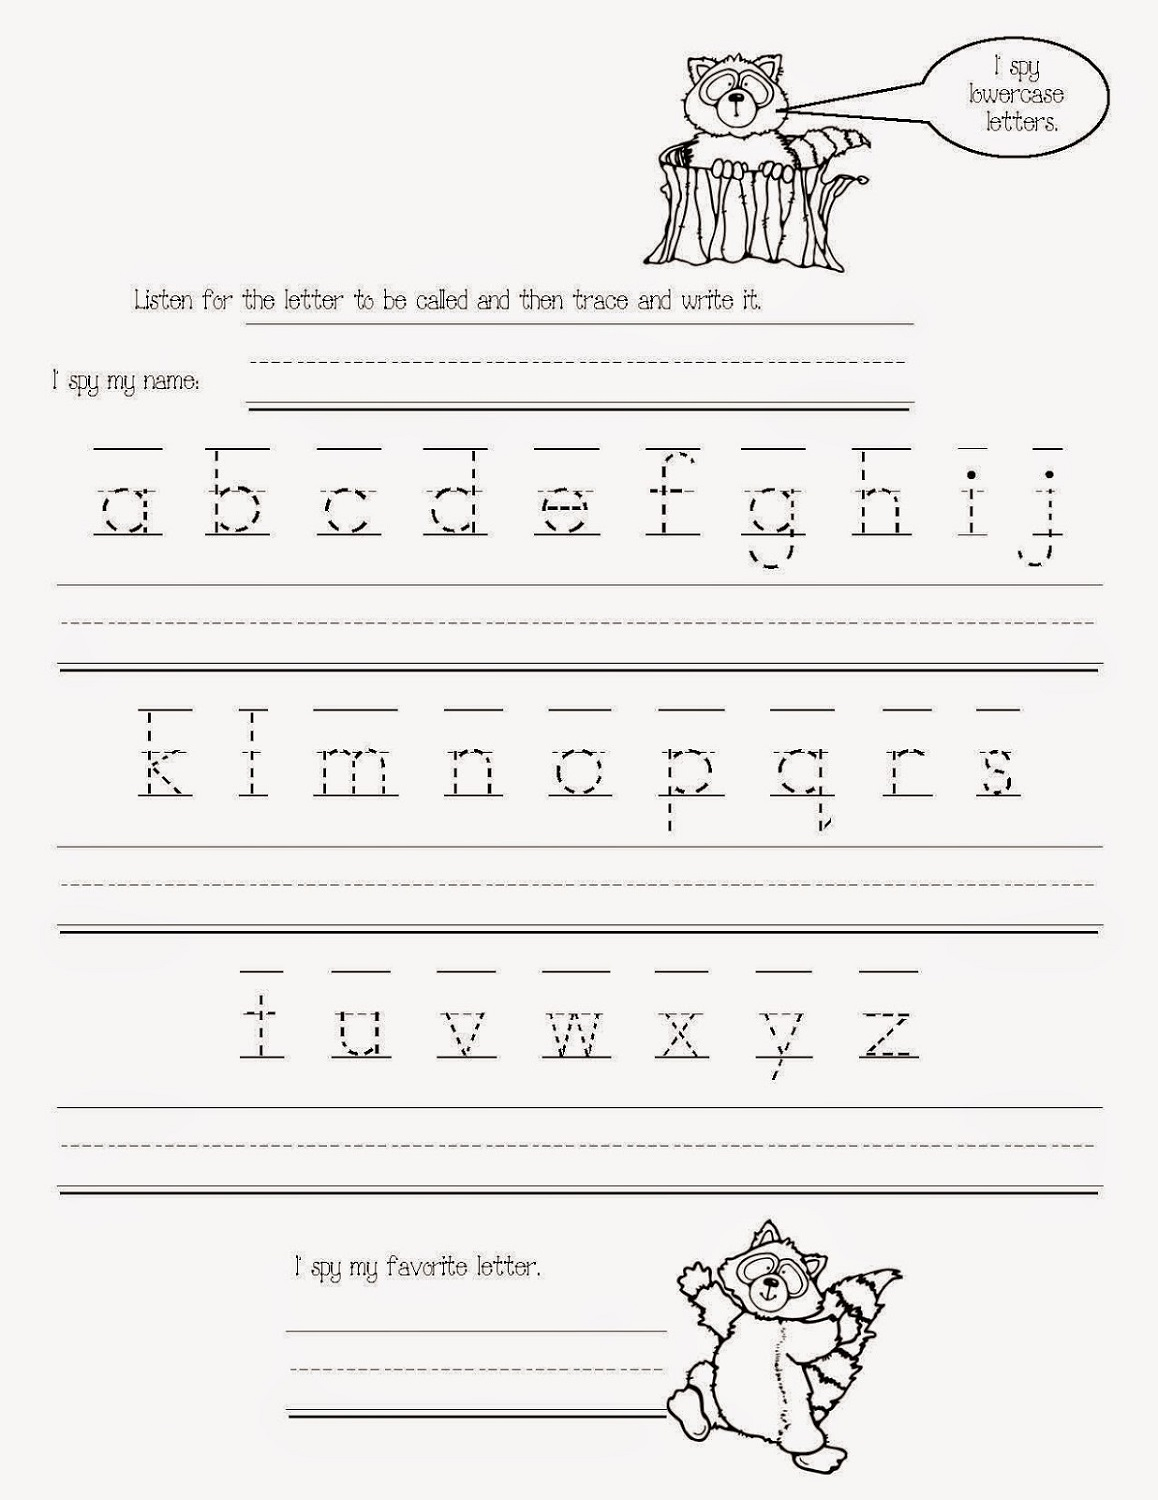 Traceable Alphabet Worksheets – Traceable Alphabet Worksheets